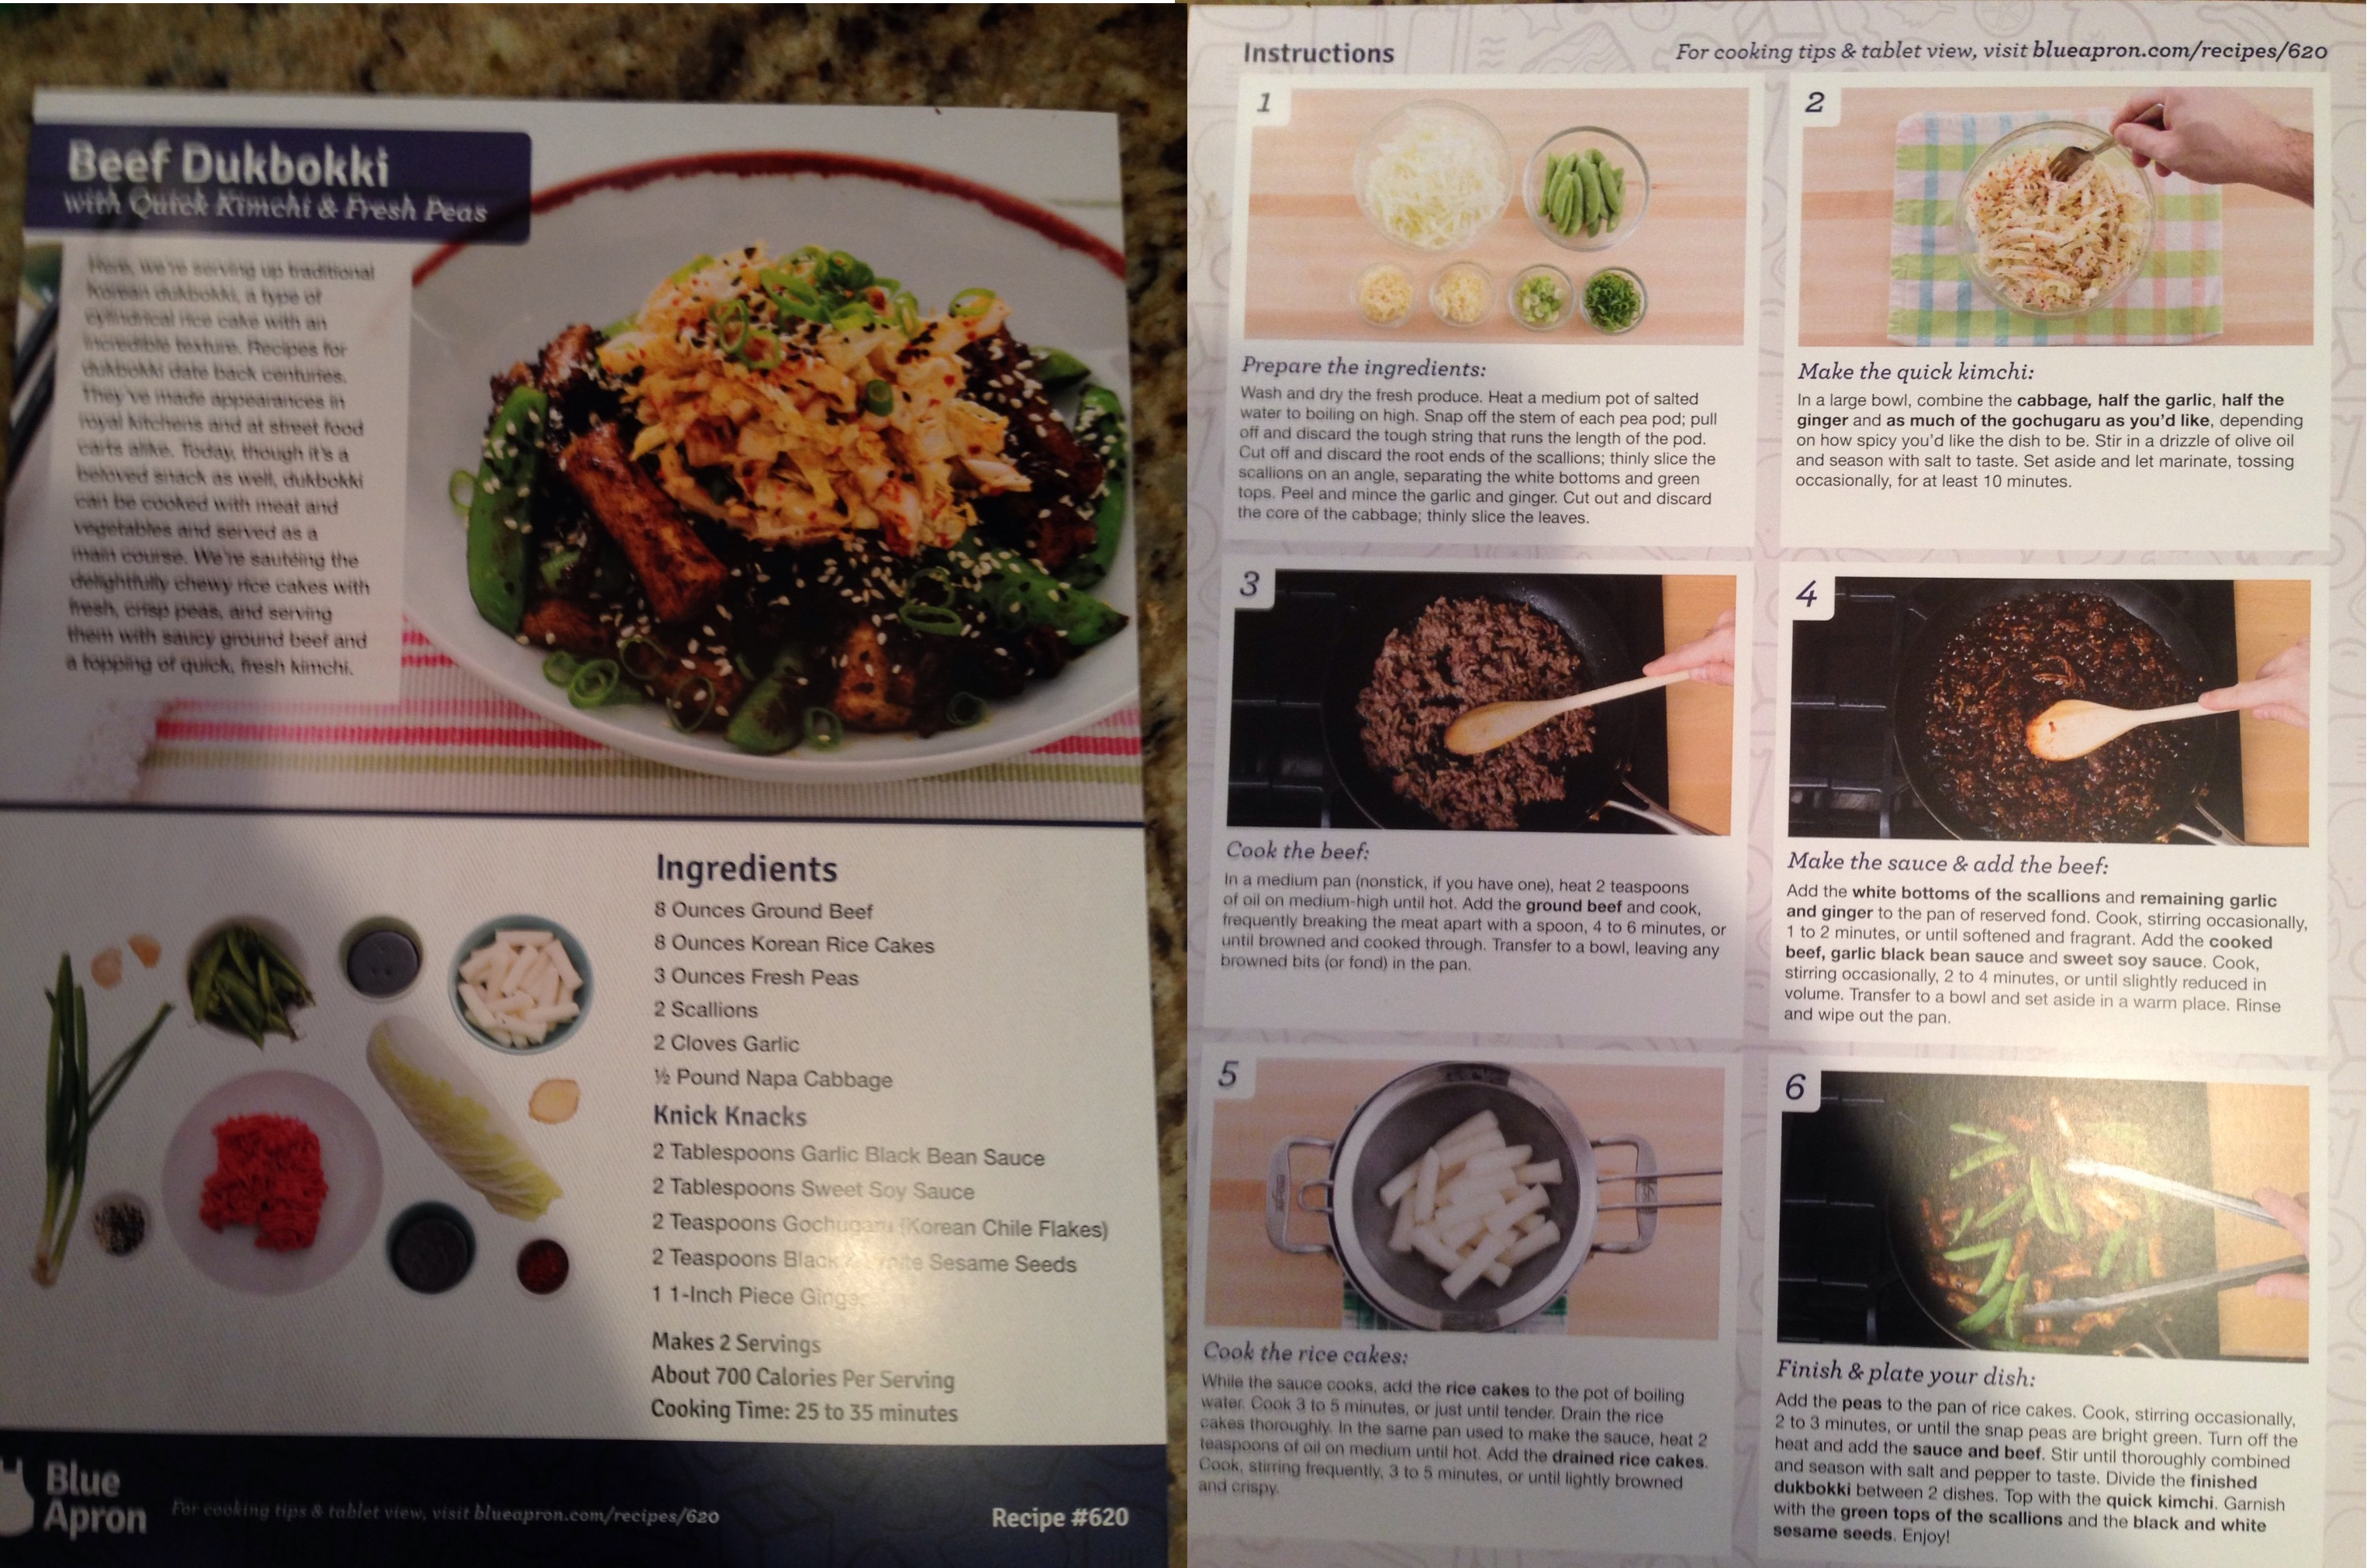 Blue apron for one